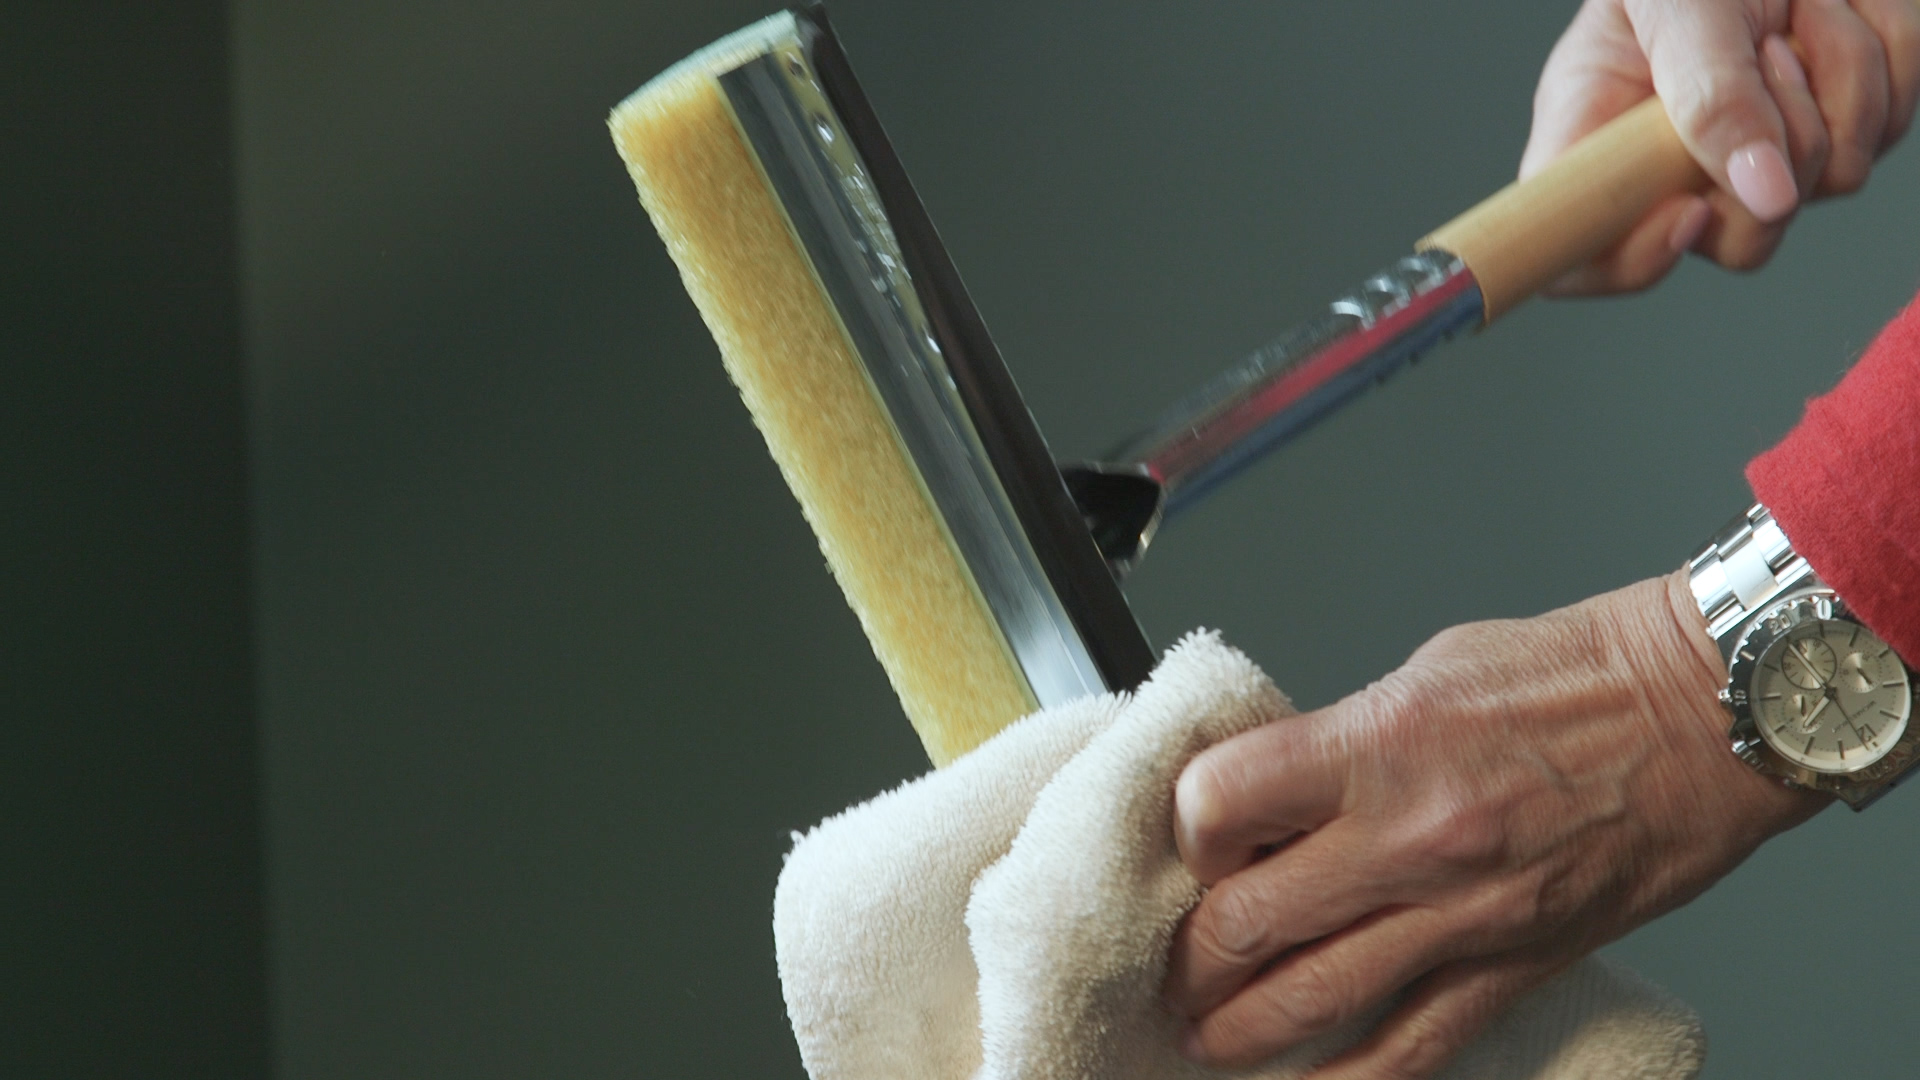 Best thing to clean windows with - More From Consumer Reports